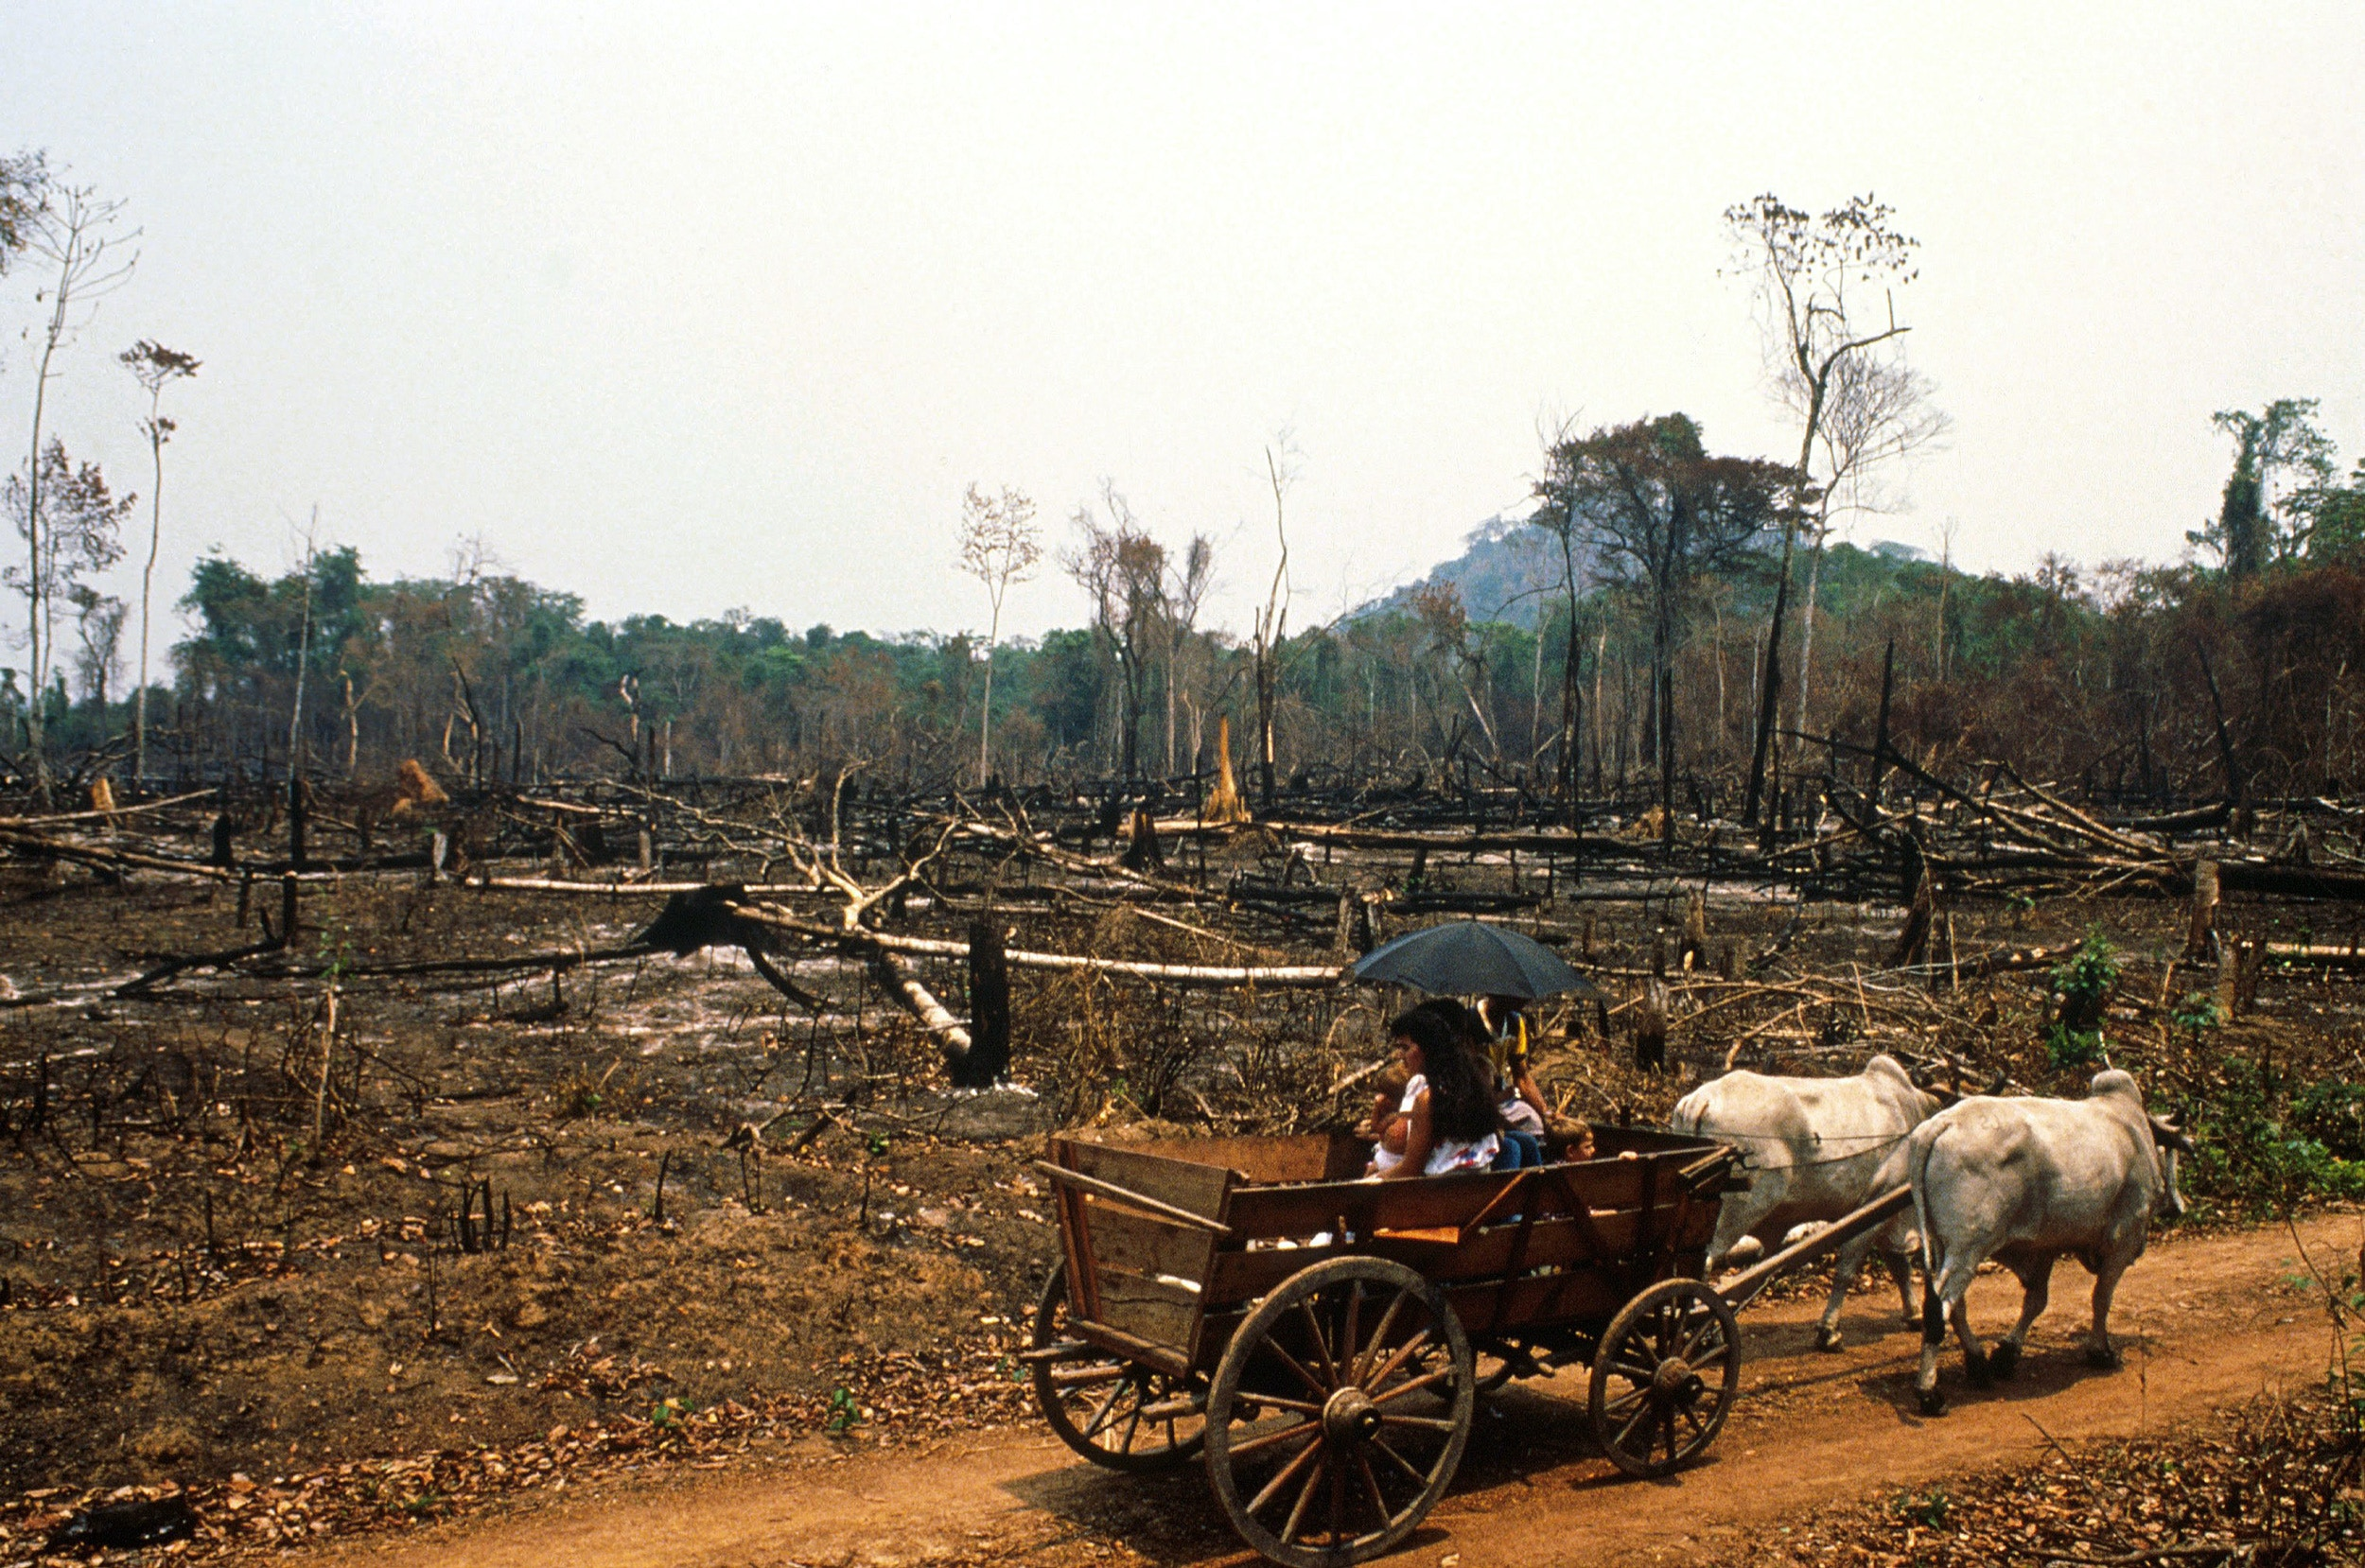 BRAZIL - AUGUST 01:  The dry bleeded amazonian forest in Amazonia, Brazil in August, 1989 - Fire in Rondonia state.